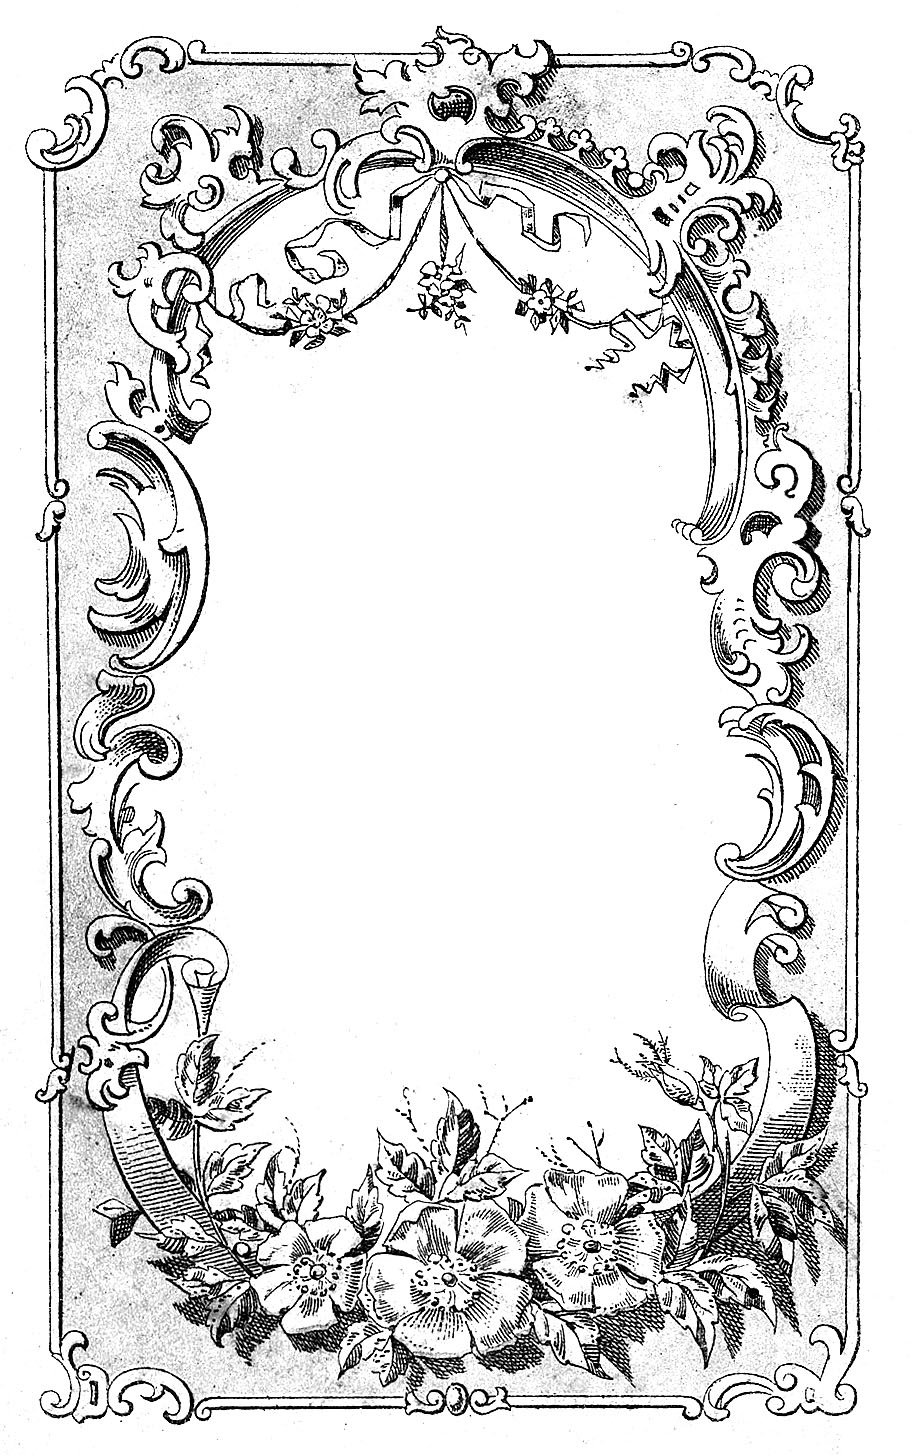 Vintage Ornate Frame Graphic